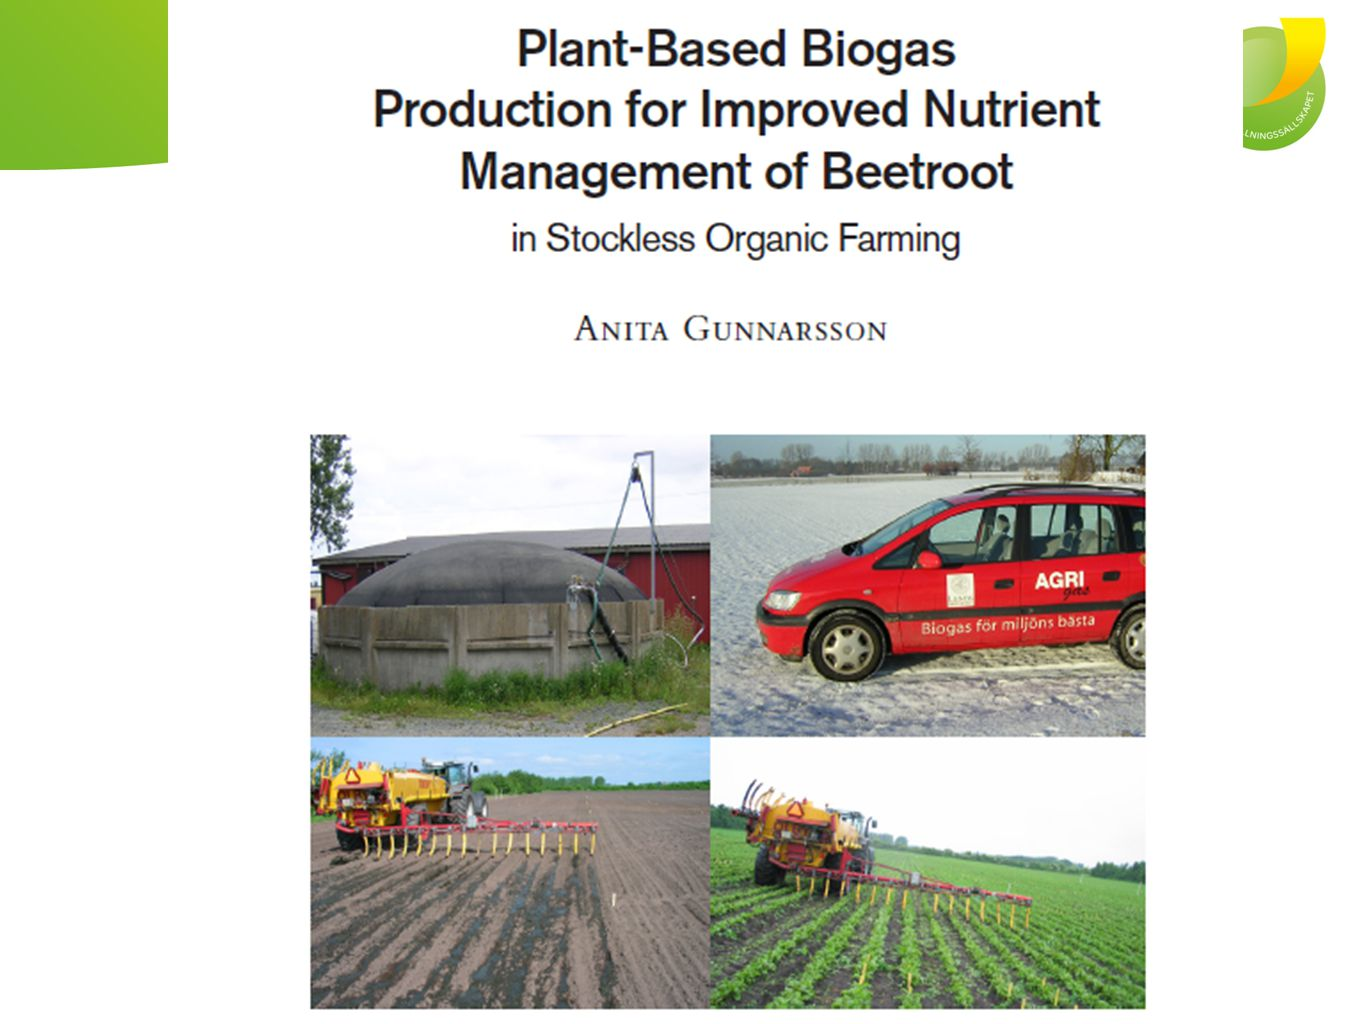 Optimizing N supply to beta Vulgaris in a crop rotation with biogas production from plant material and use of residues as fertilizer – productivity and possibilities for adaptation at farm level